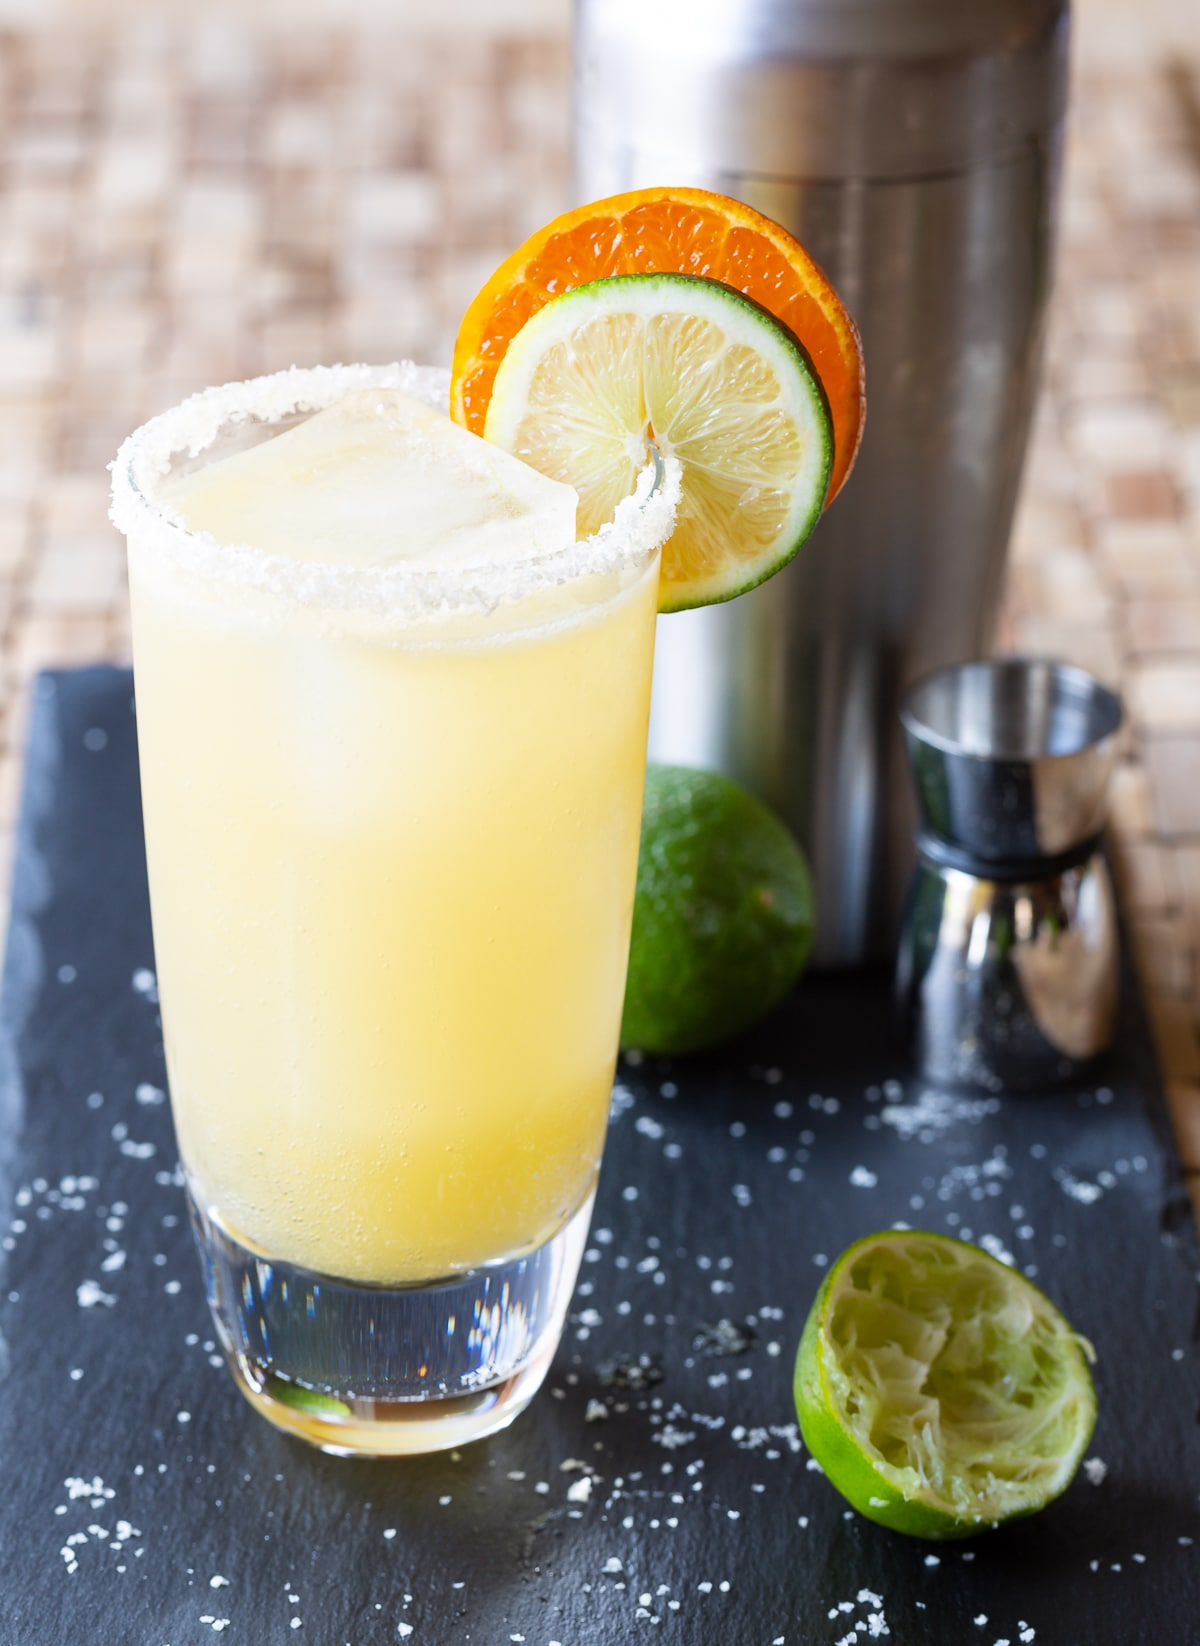 Simple Margarita Recipe #CincodeMayo #Margaritas #margs #Mexican #Cocktails #tequila